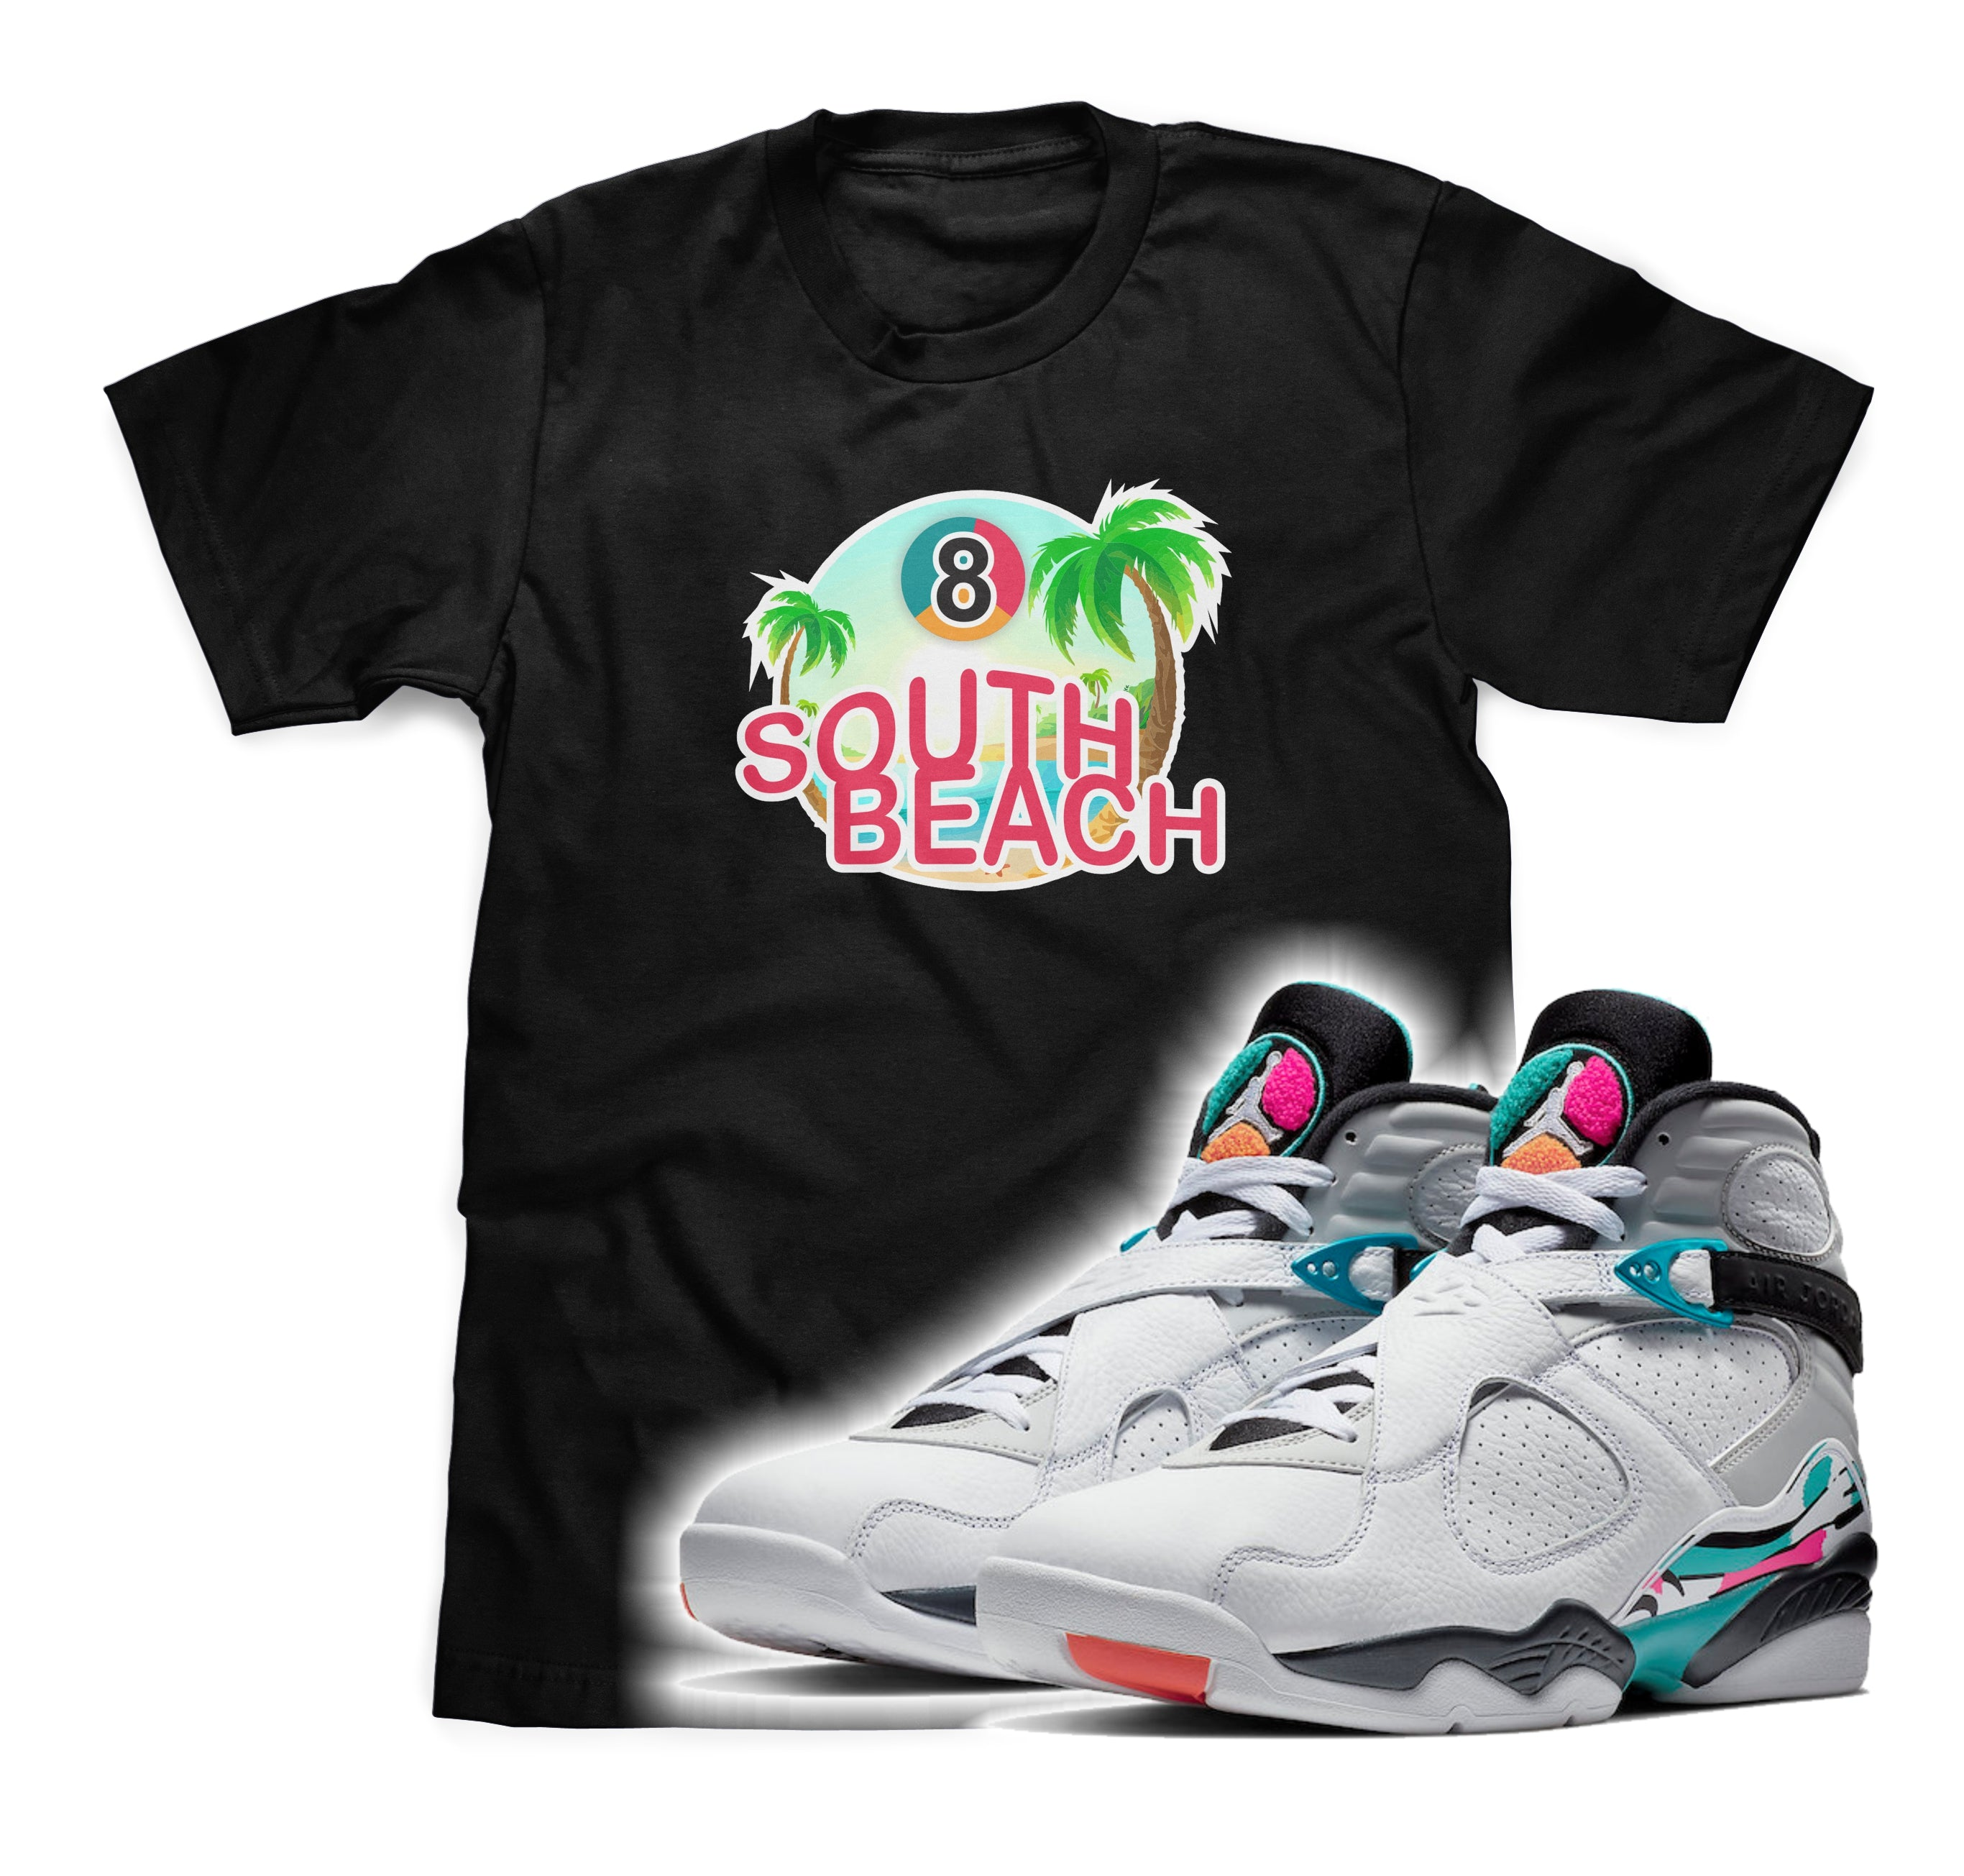 South Beach Tee (Designed to match Air Jordan 8 South Beach Sneakers)